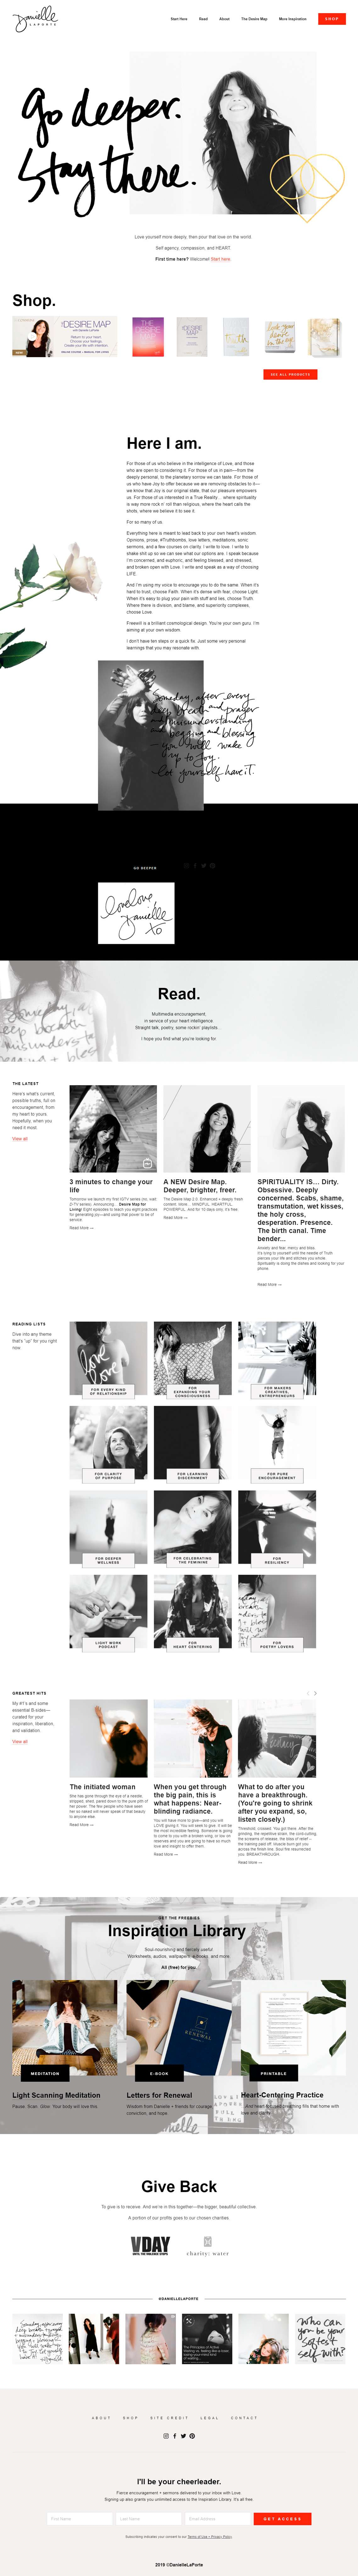 Want to see the best coaching websites in Squarespace? This one is for life coach, author and speaker, Danielle LaPorte. Click through for inspiration for your website | www.jessicahainesdesign.com